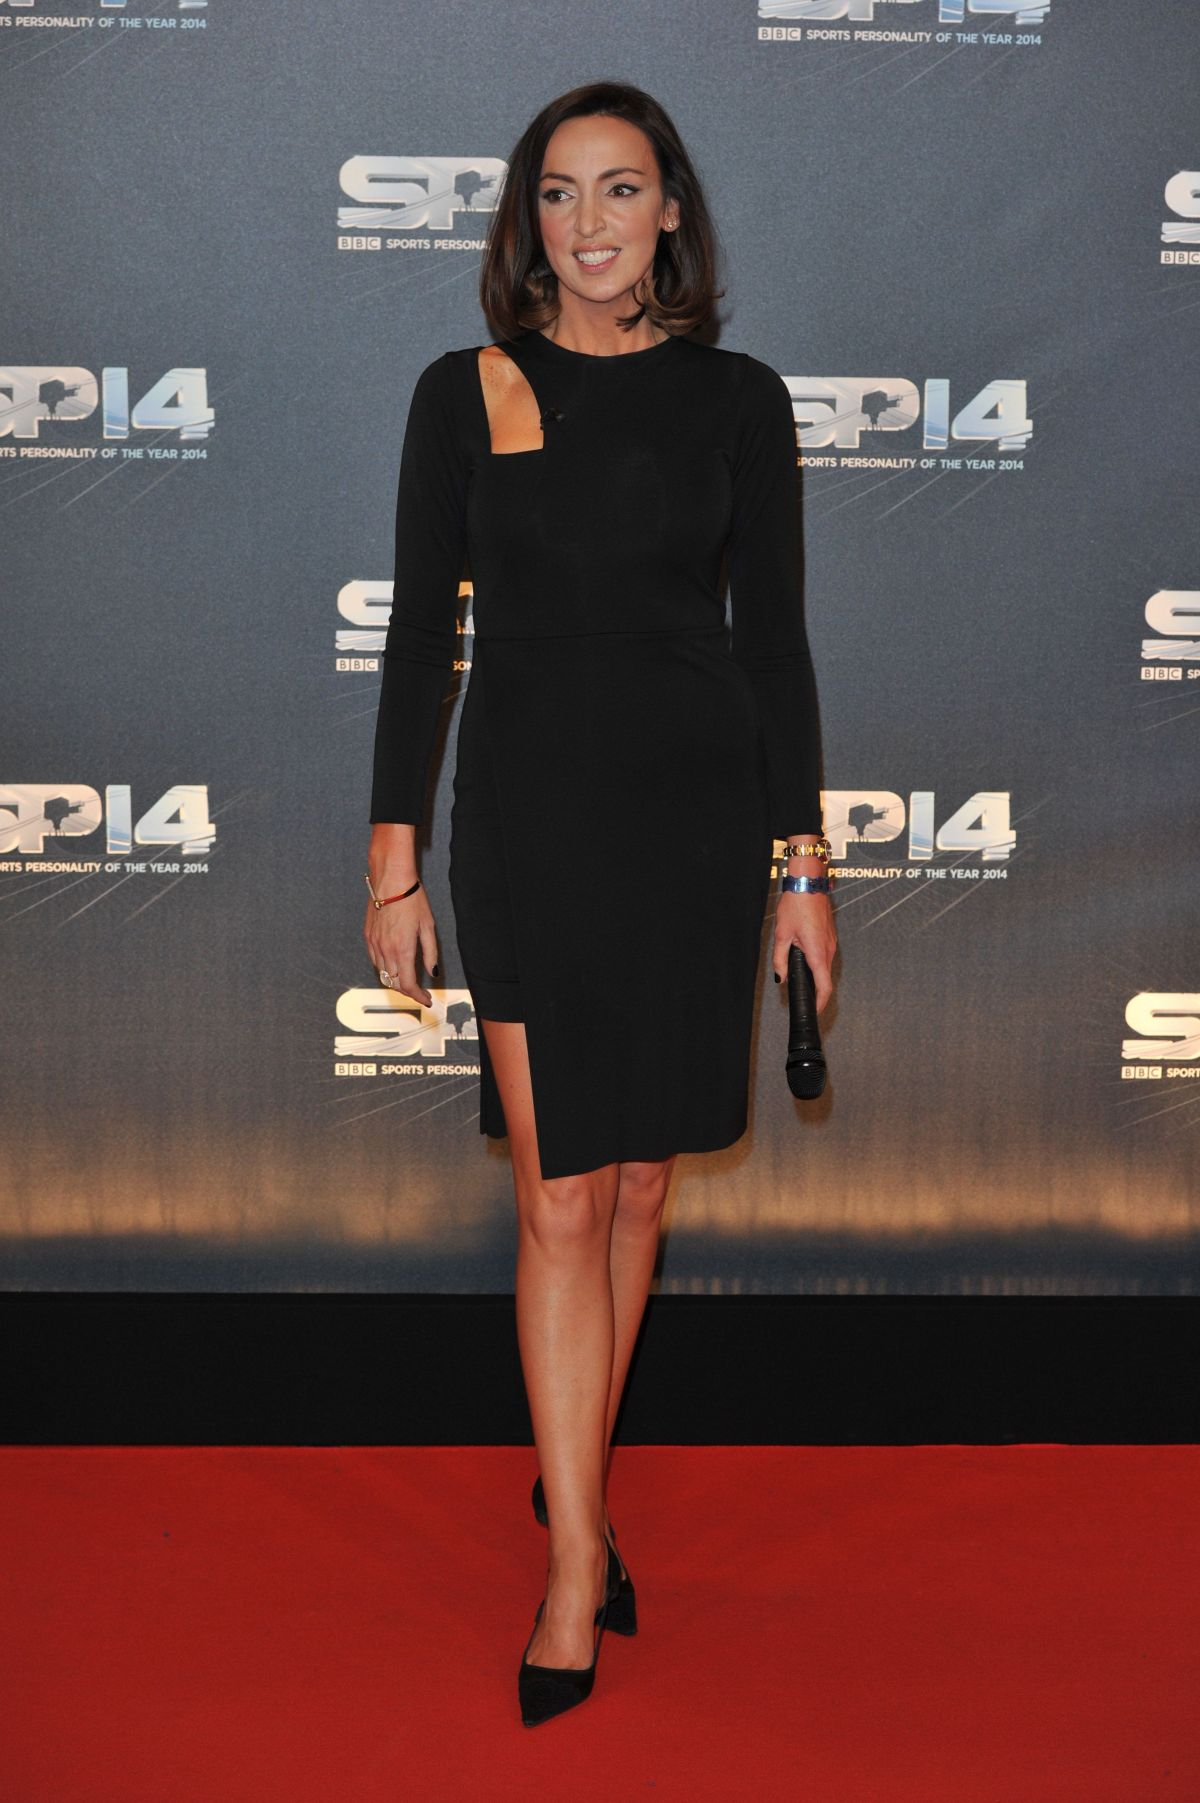 SALLY NUGENT at BBC Sports Personality of the Year Awards in Glasgow